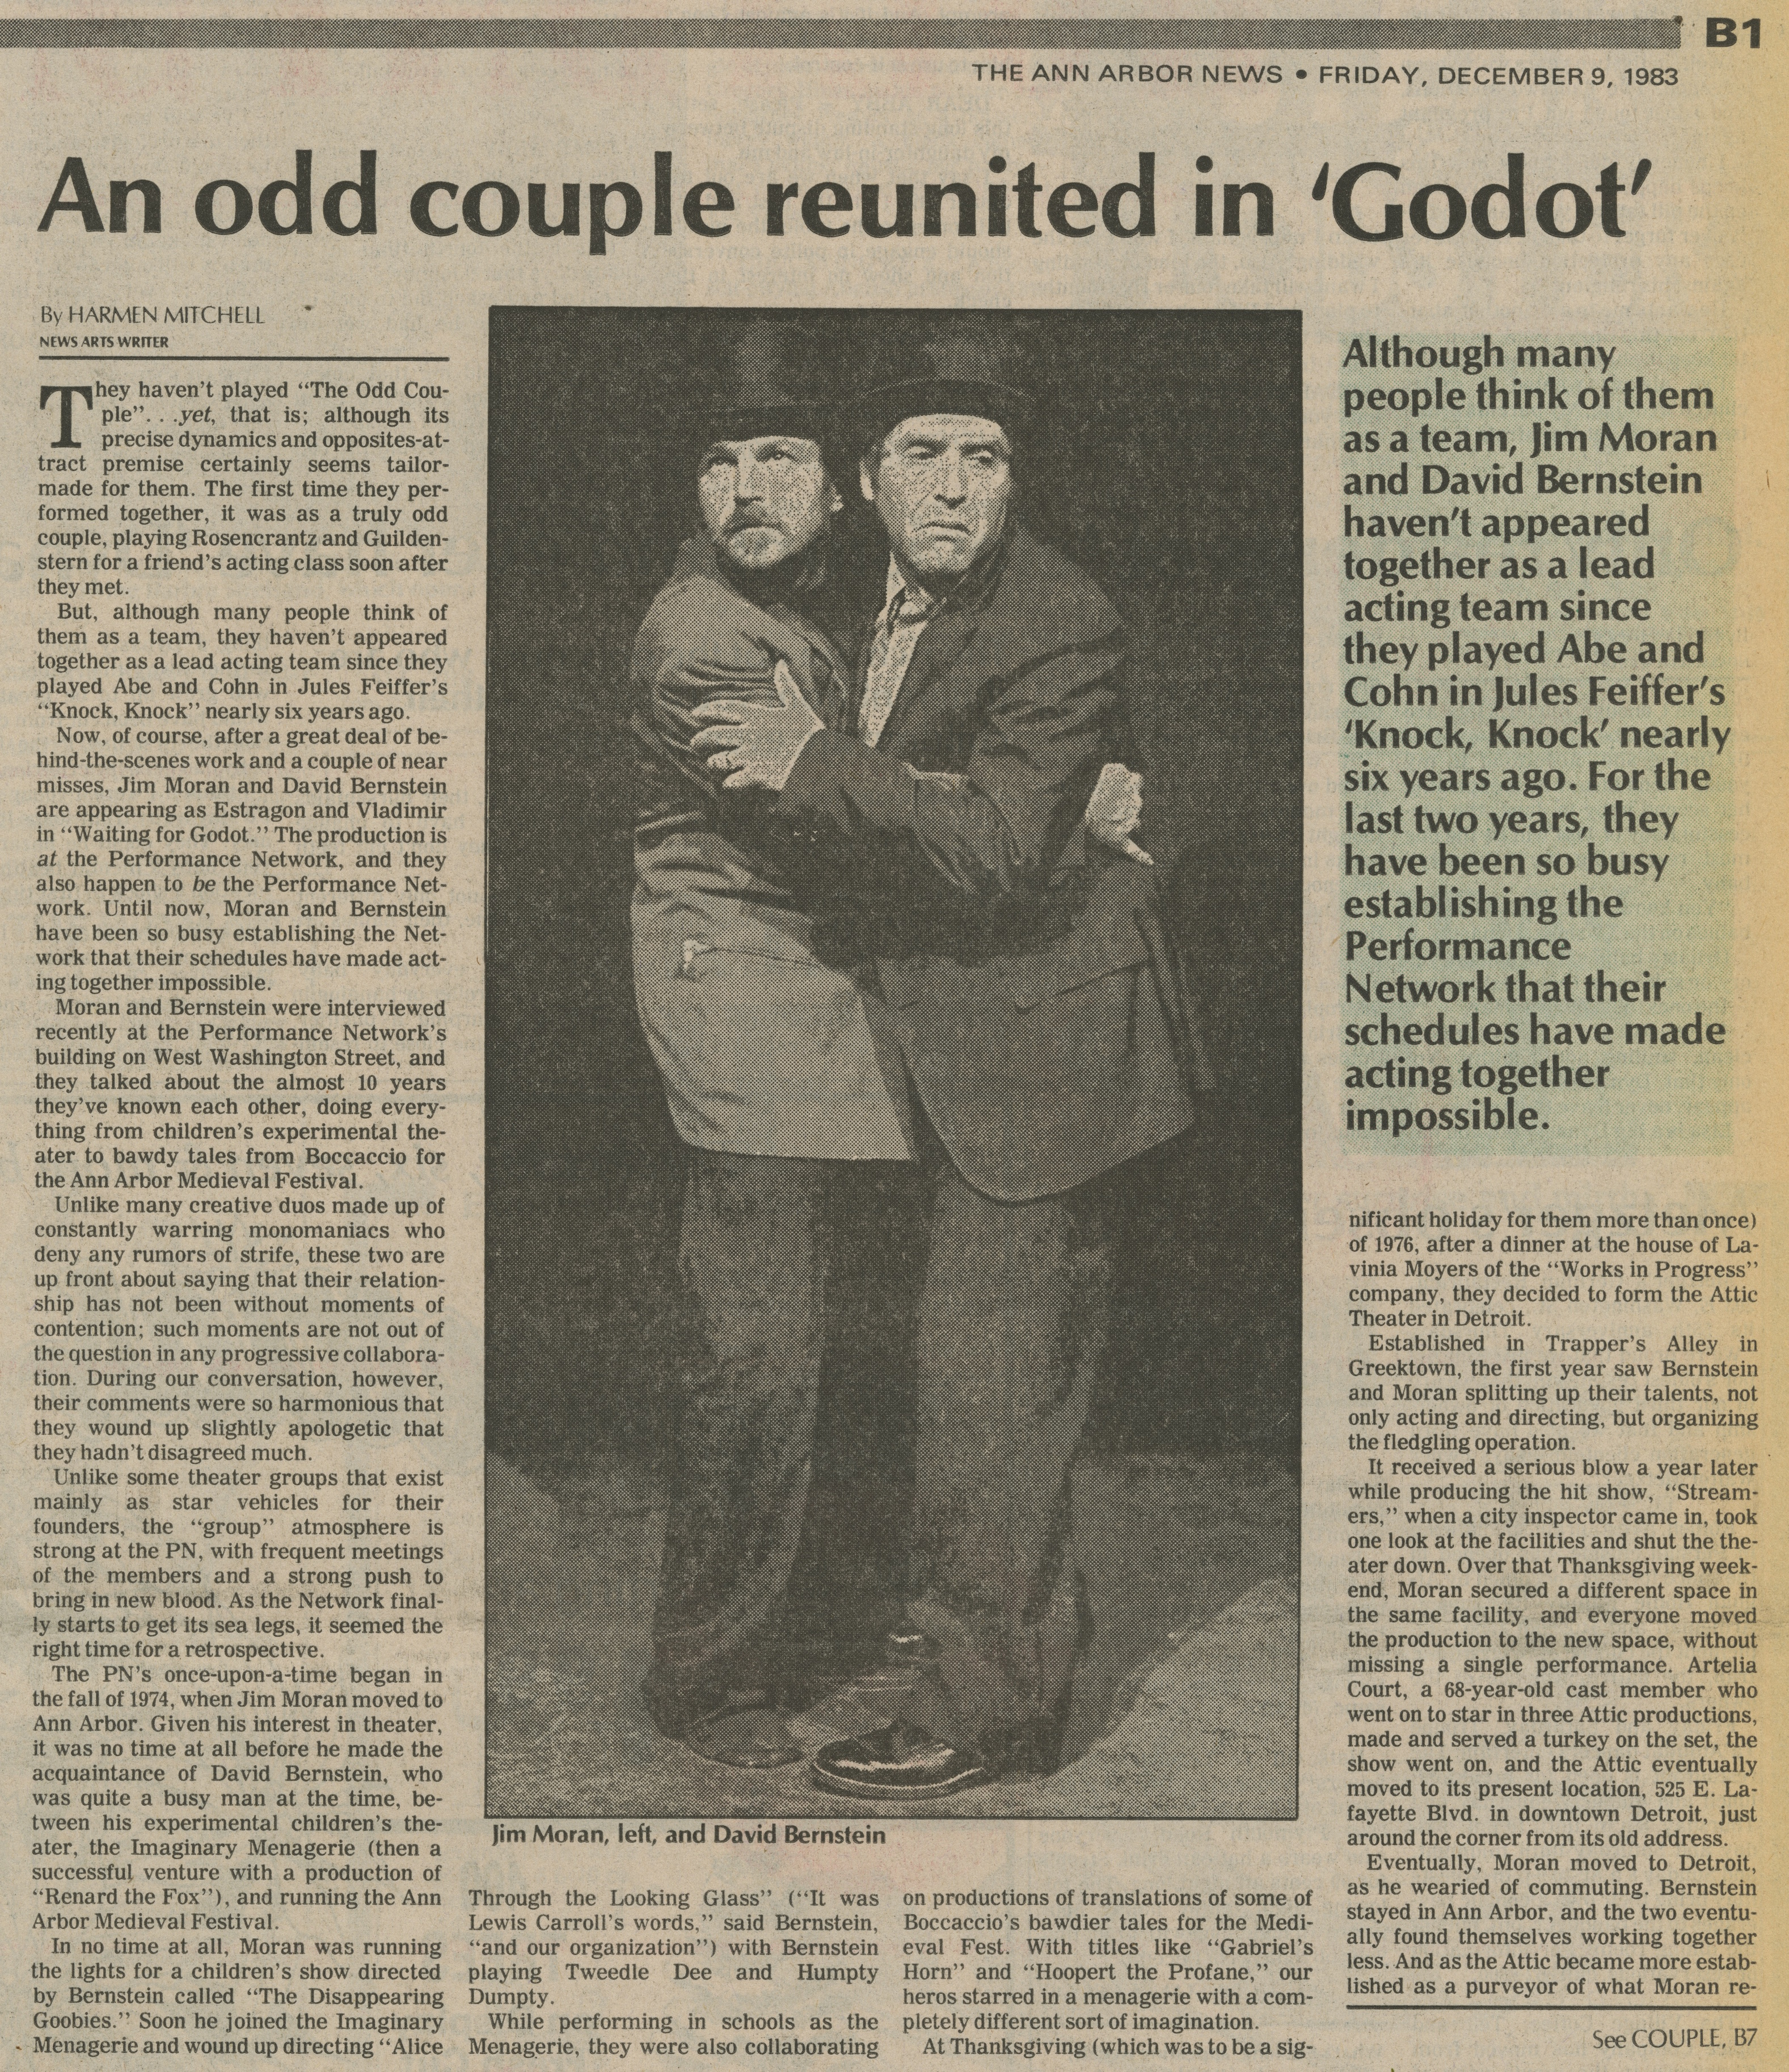 An odd couple reunited in 'Godot' image